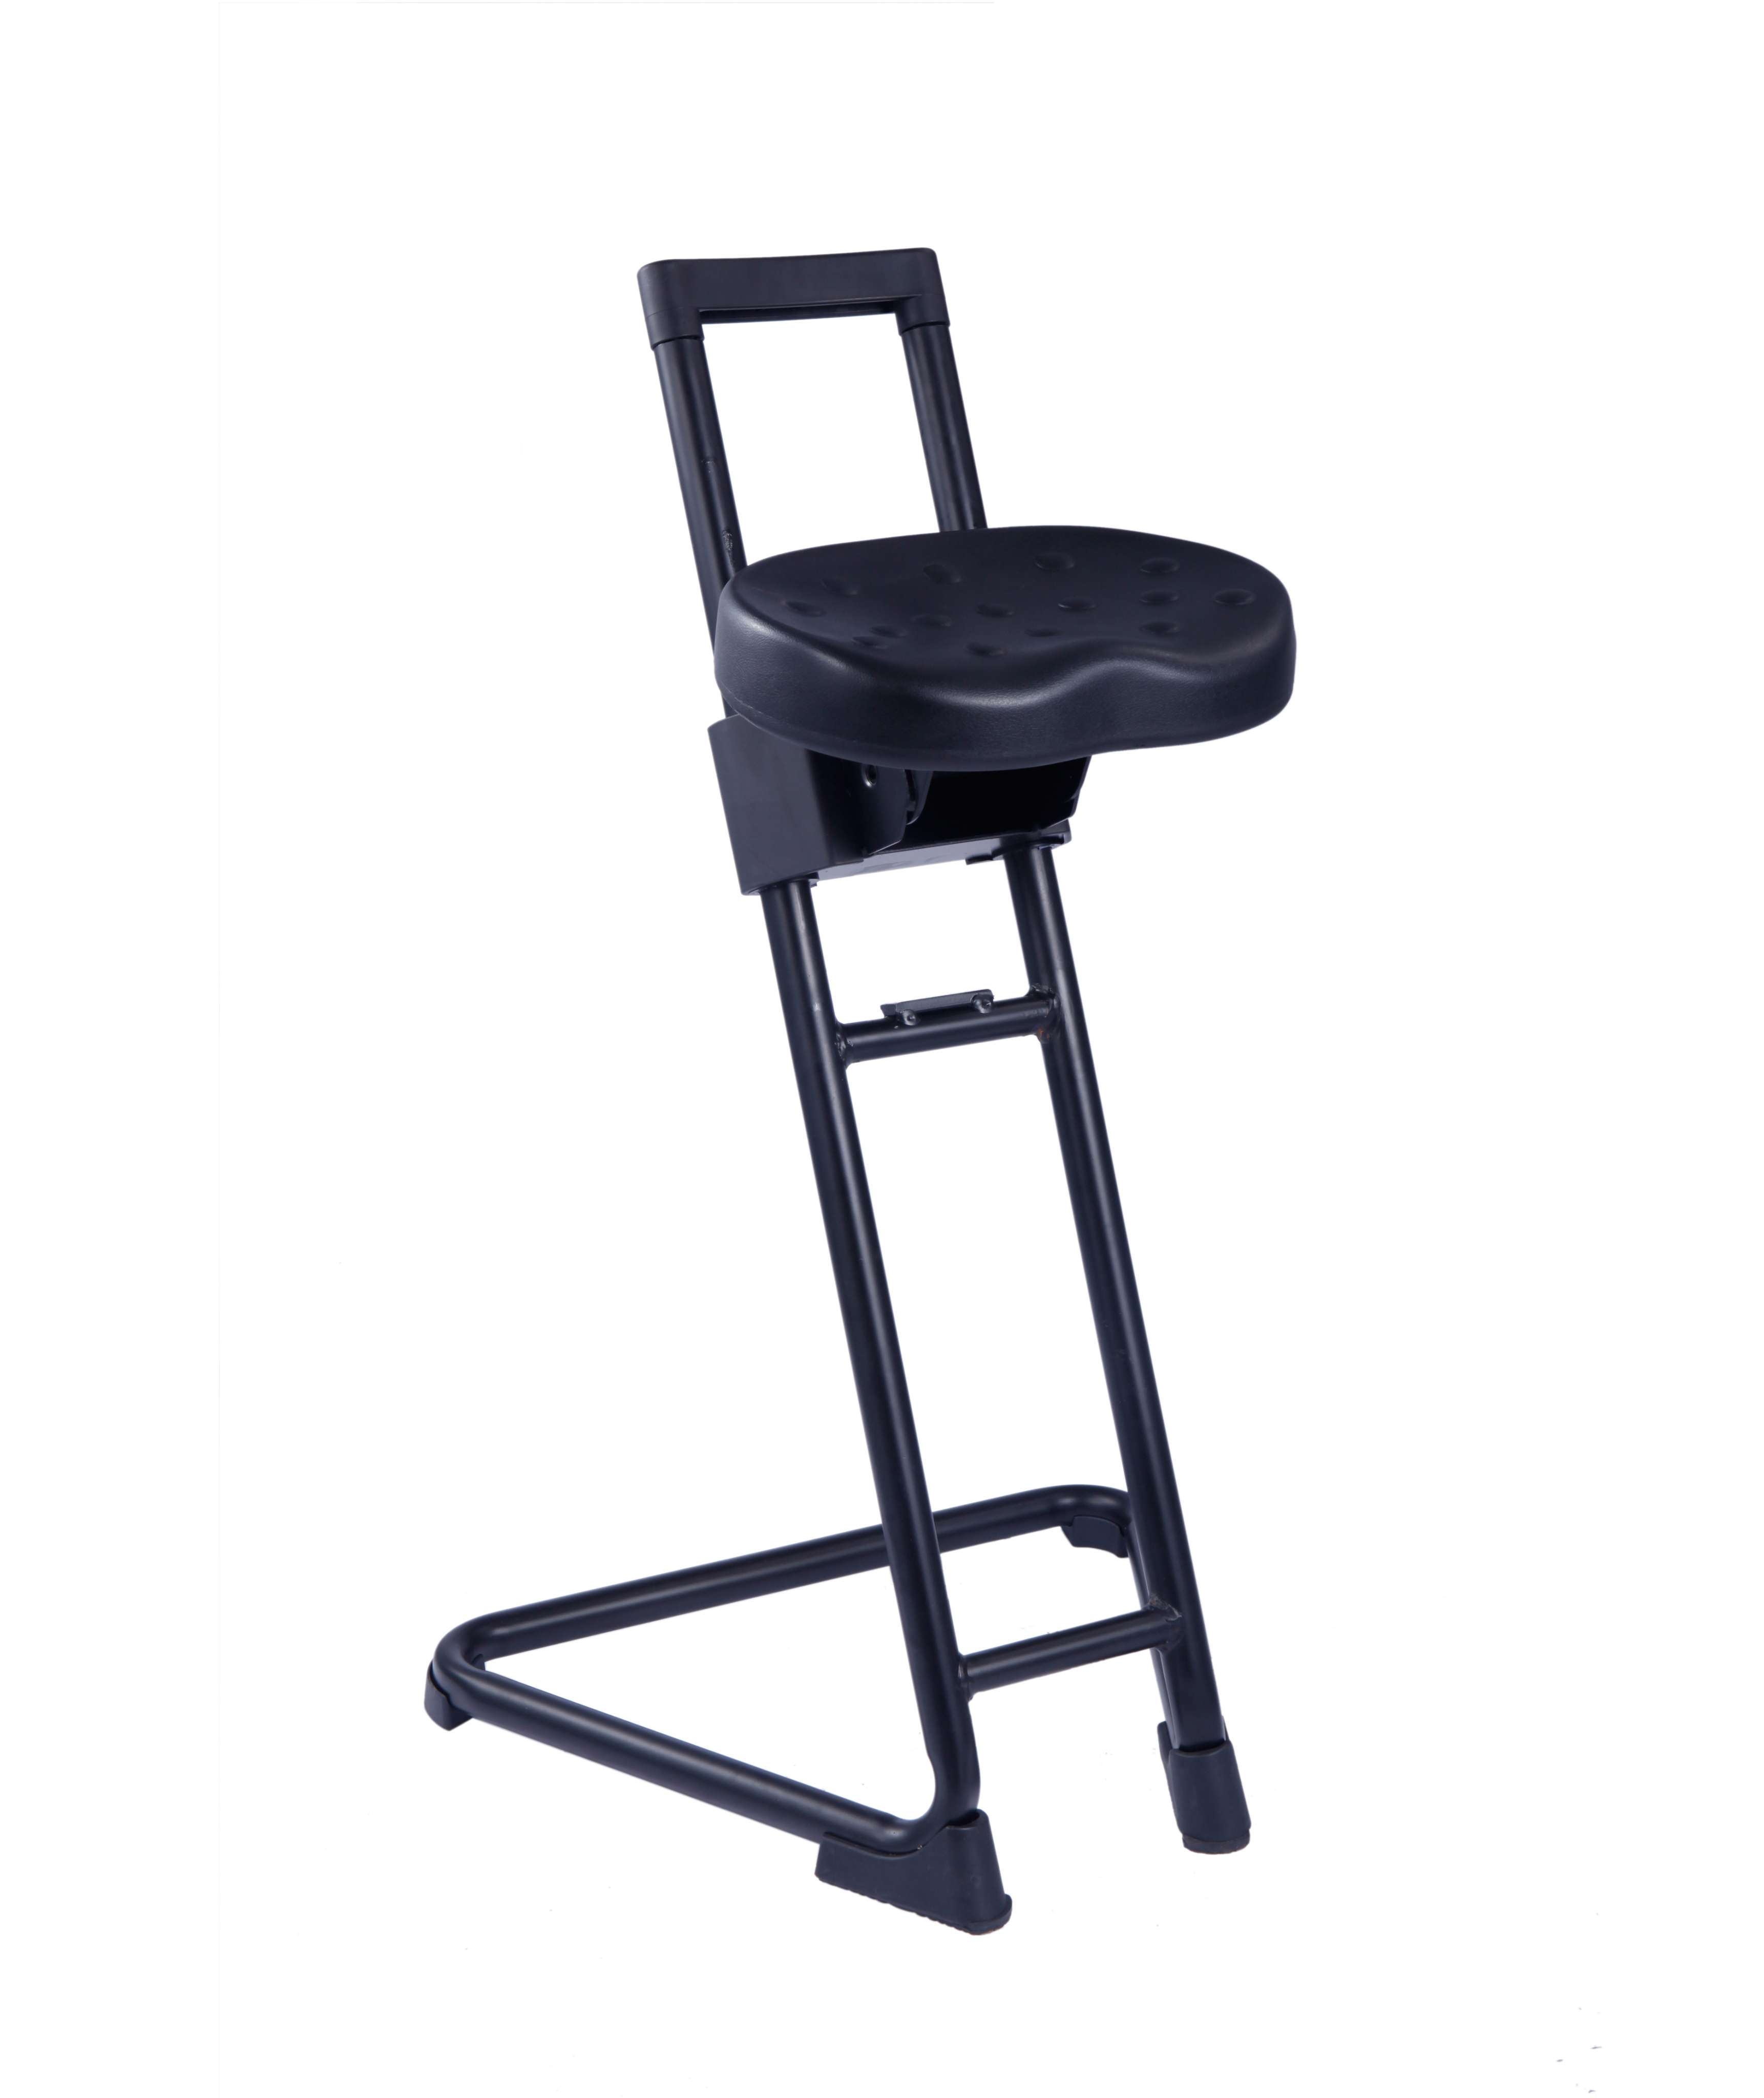 Ergonomic sit stand stool sit stand chair cleanroom chair ESD